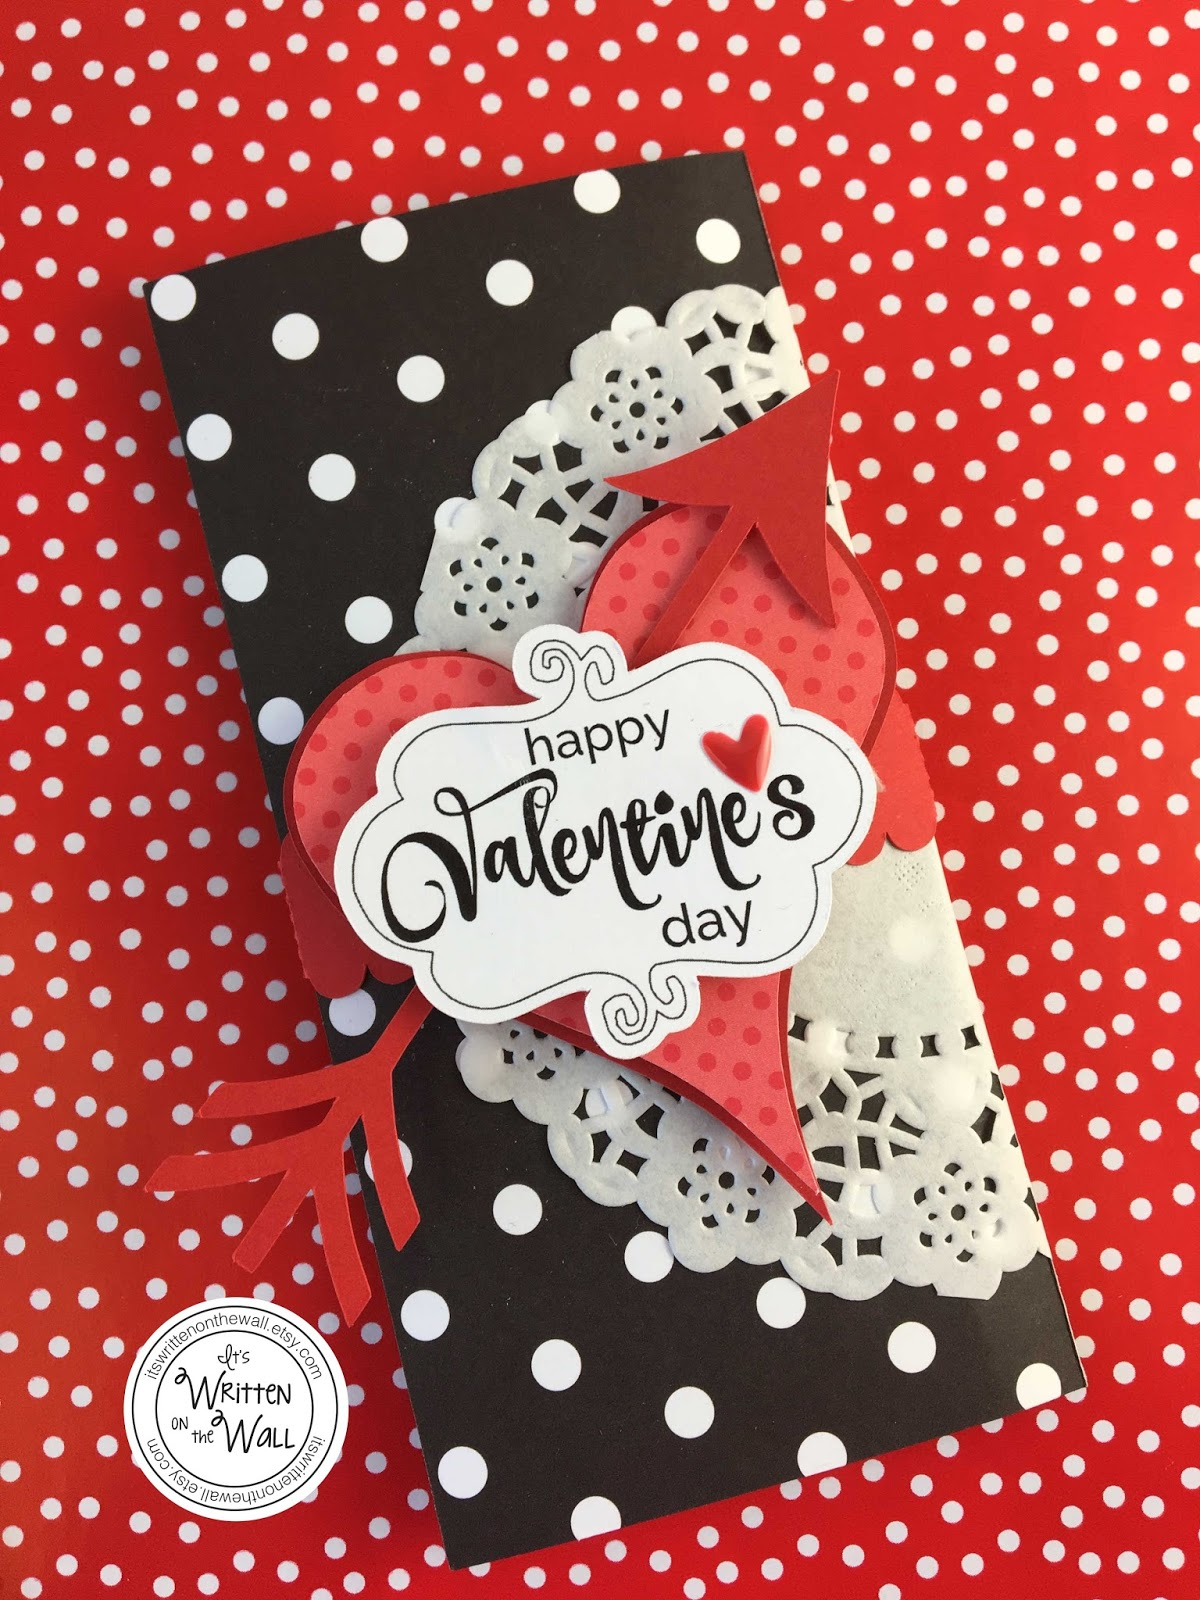 It's Written On The Wall: Wrap Up Some Valentine